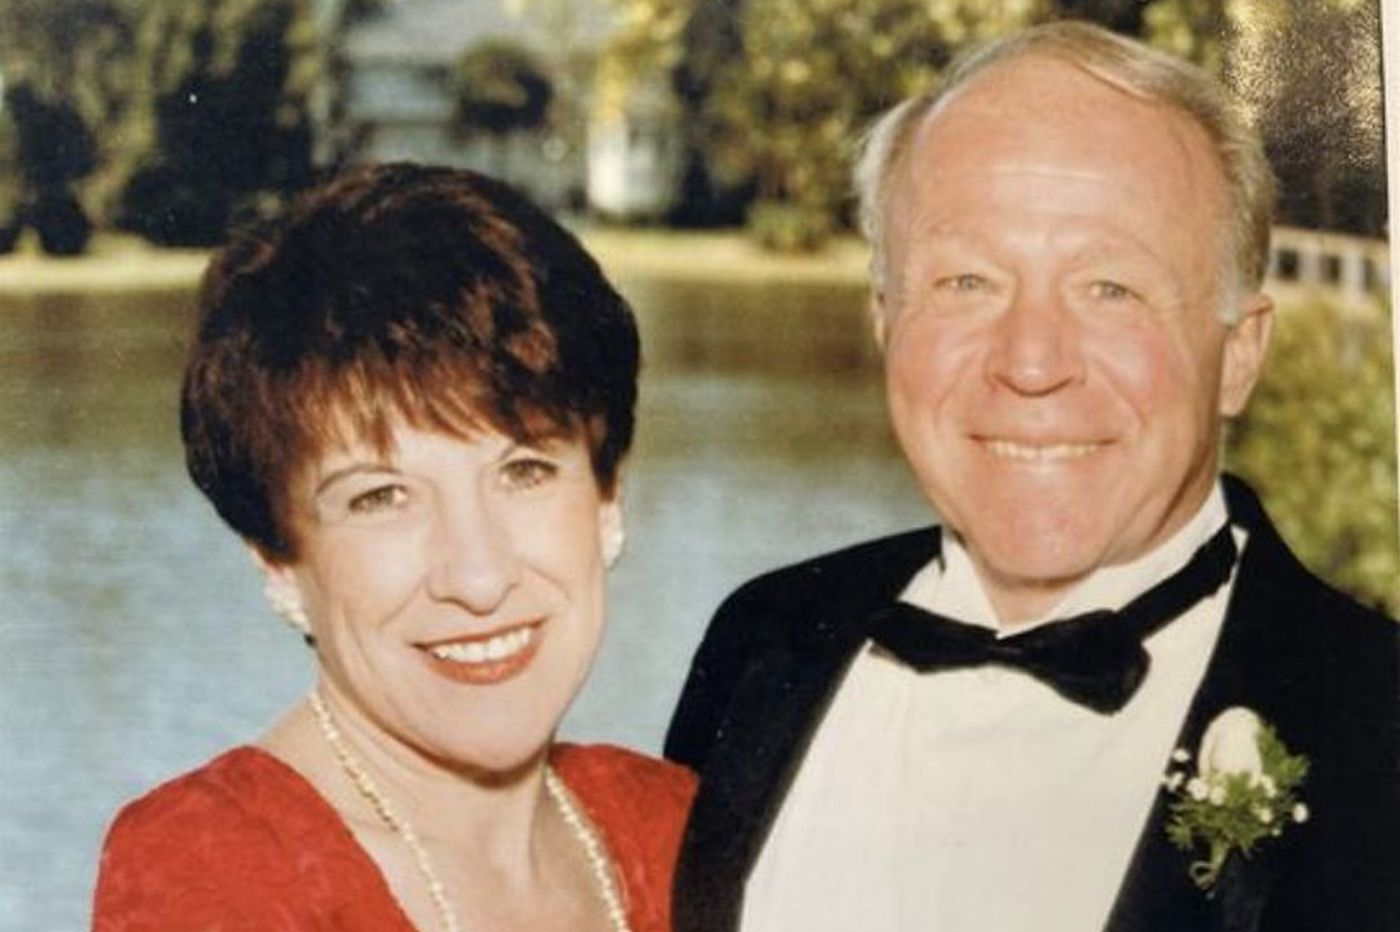 William Logue, Hall of Fame Drexel swimming and diving coach, dies at 86